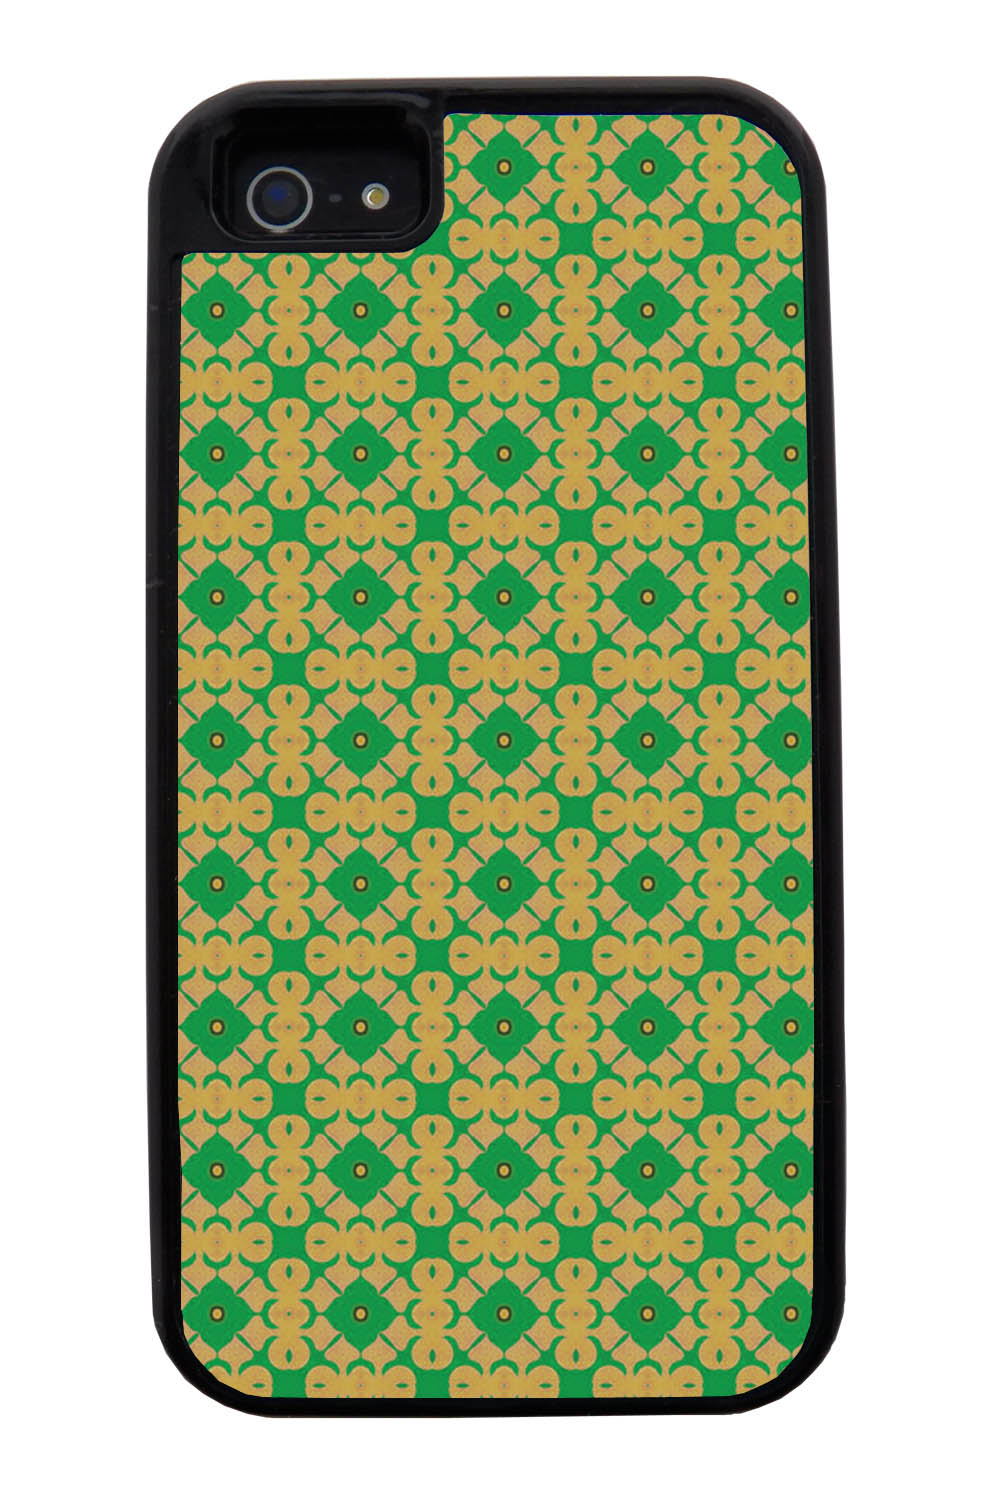 Apple iPhone 5 / 5S Abstract Case - Green and Gold - Flower Petal Like - Black Tough Hybrid Case